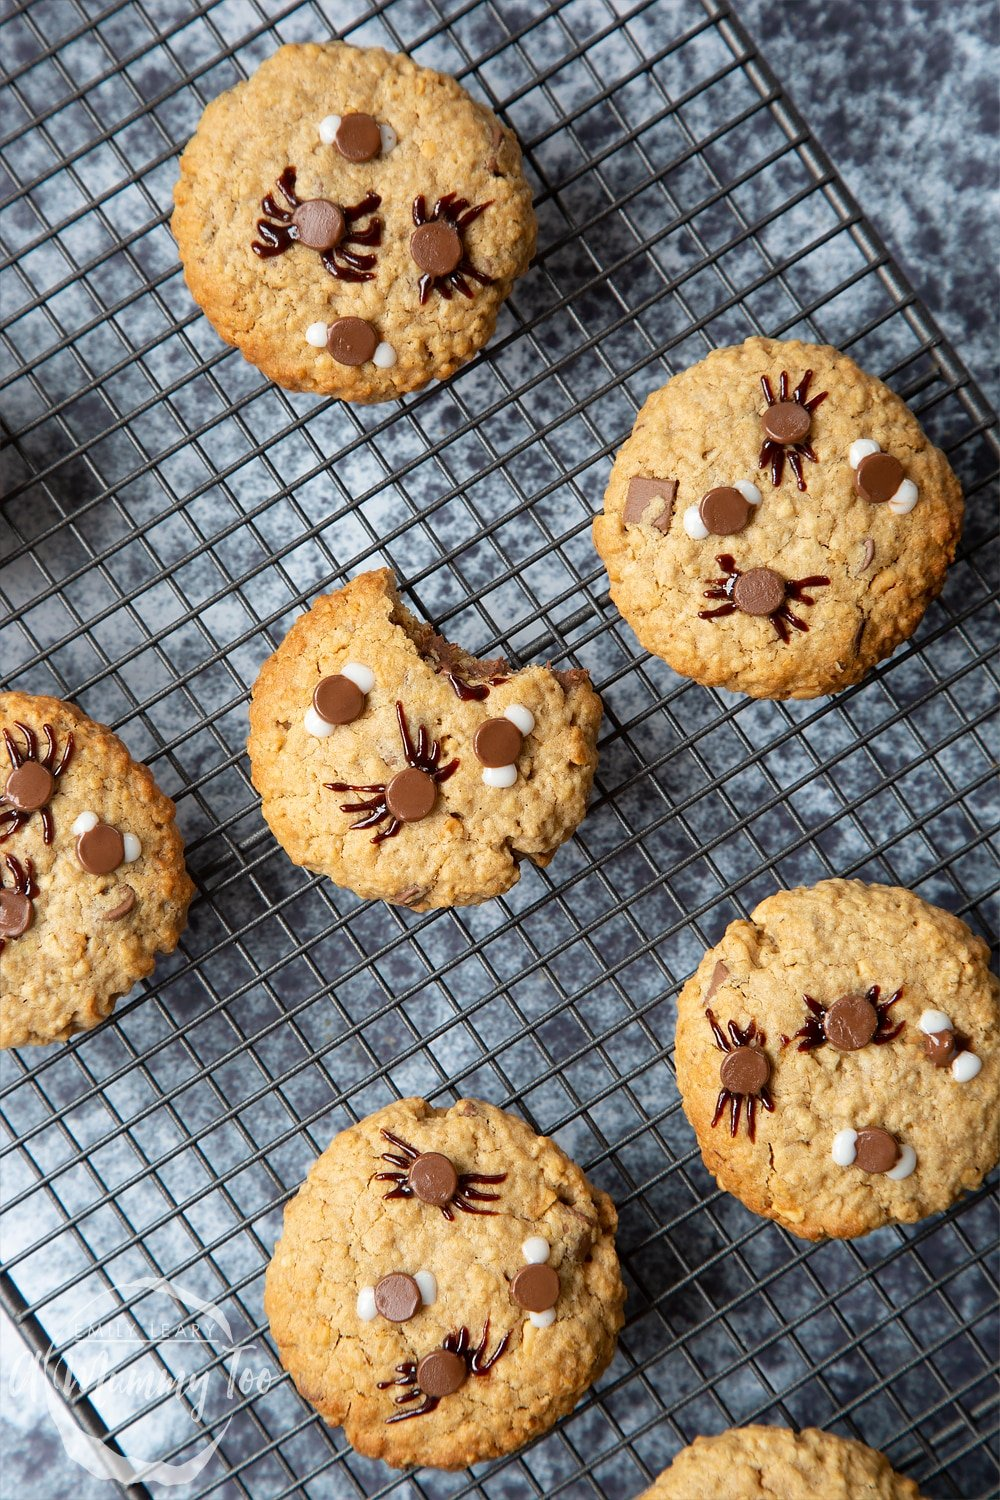 Halloween peanut butter spider cookies cooling on a wire rack. A bite is taken out of one cookie.